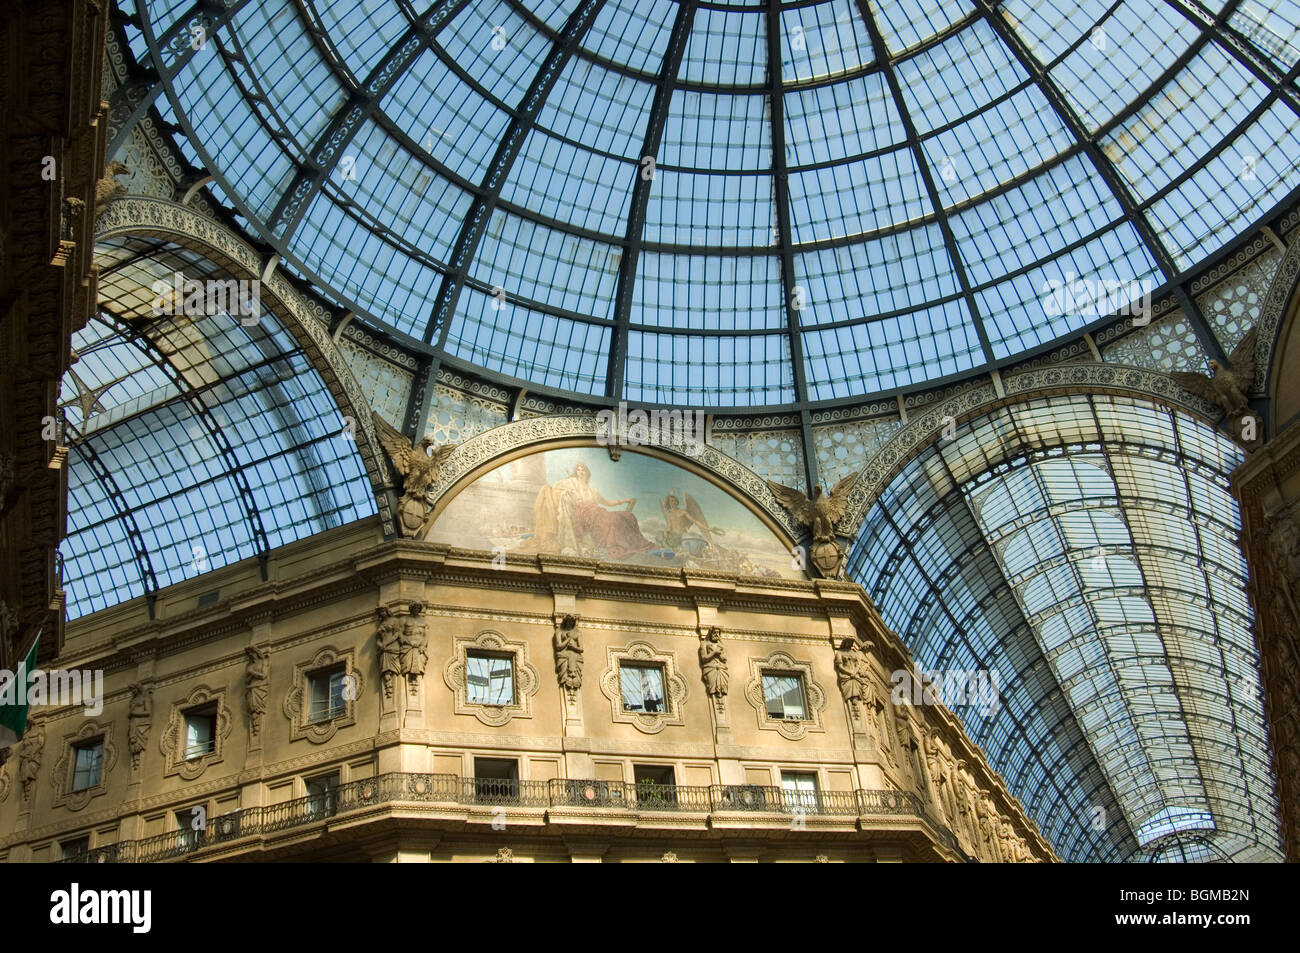 Le toit en verre de la Galleria à Piazza Duomo, Milan Photo Stock